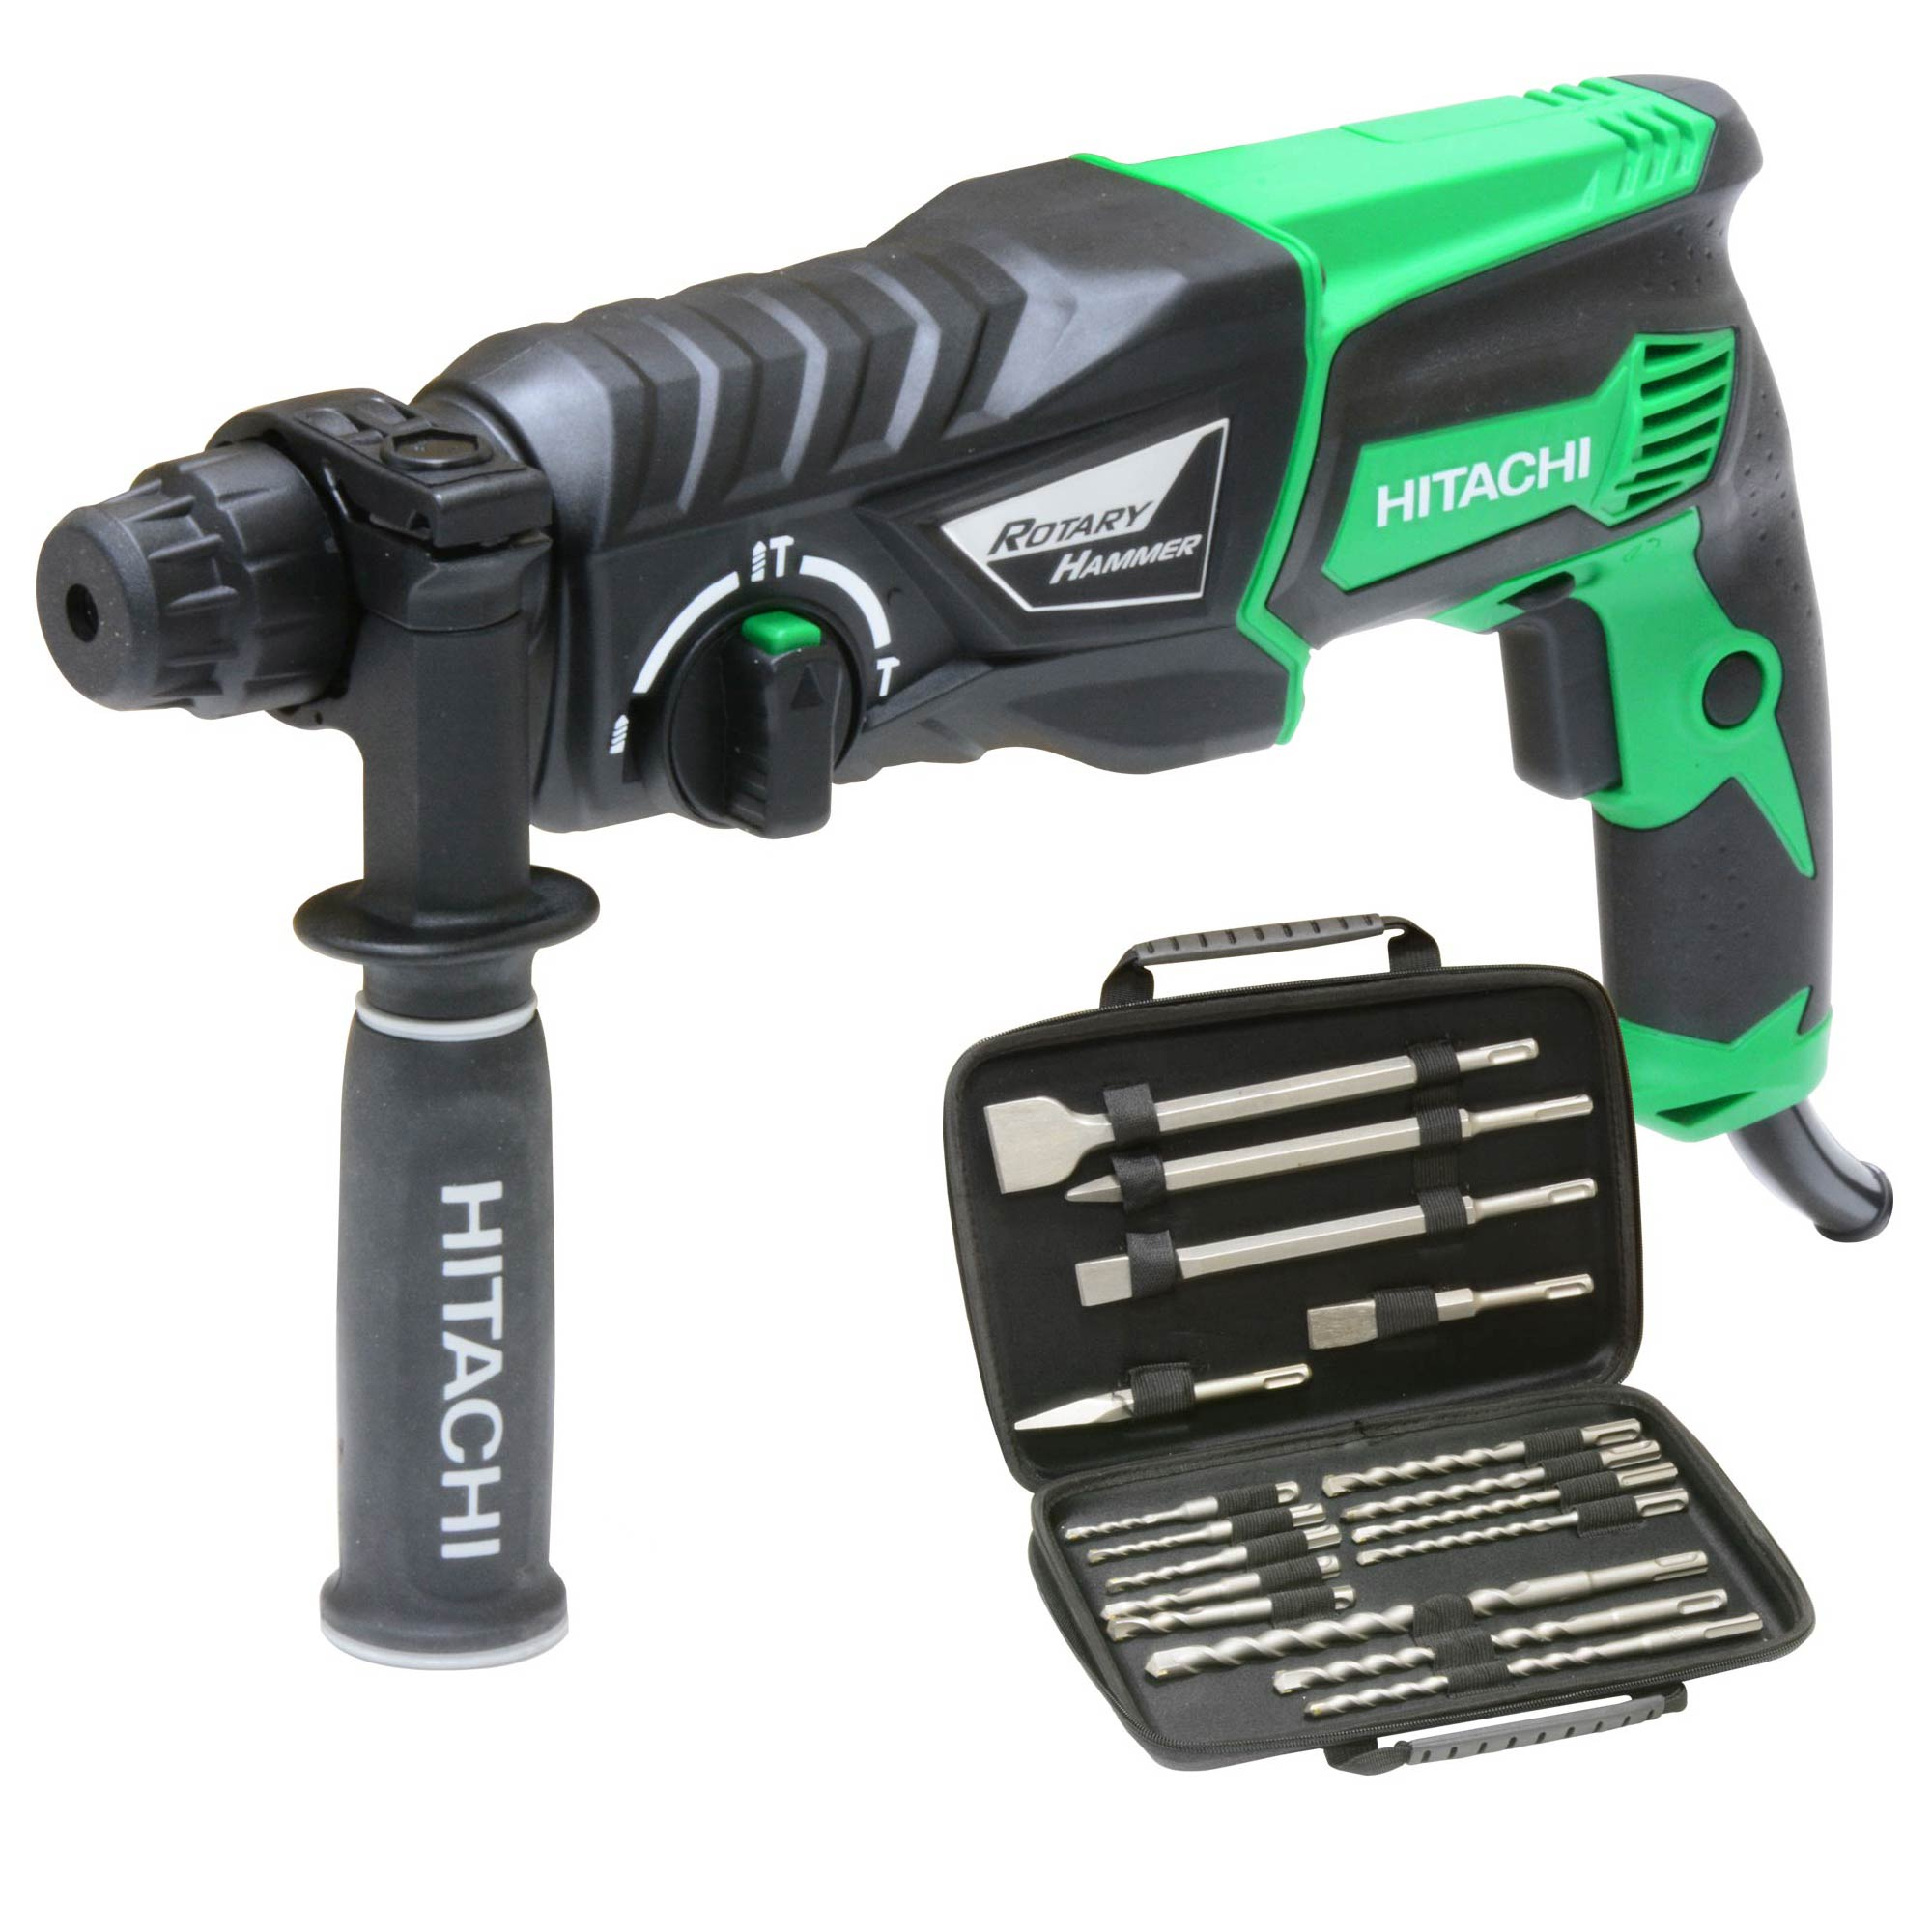 hitachi impact drill. view; play video; hitachi dh26px sds+ rotary hammer drill impact o